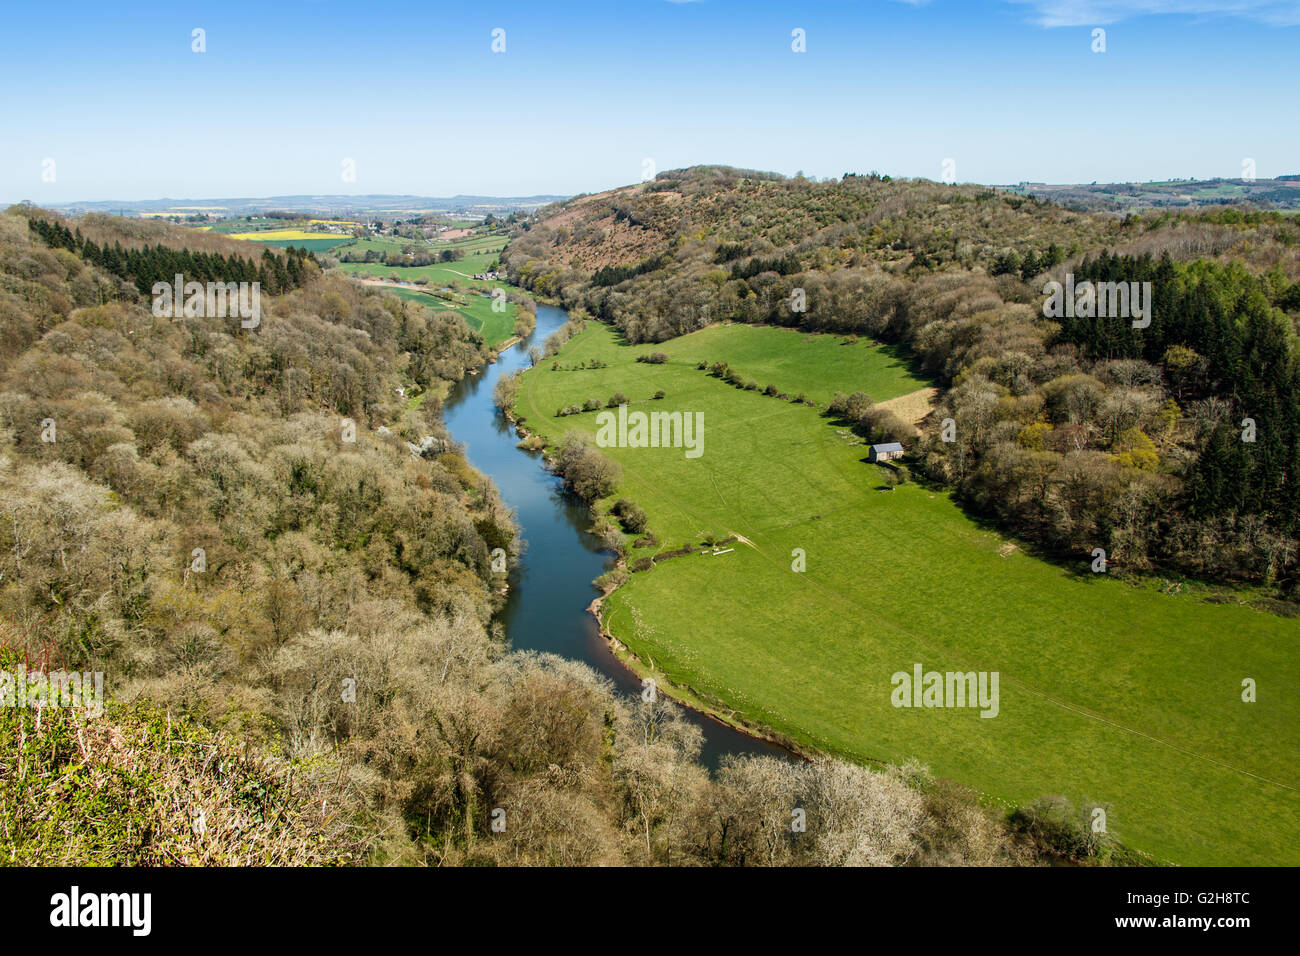 The Wye Valley from Symonds Yat Rock - Stock Image